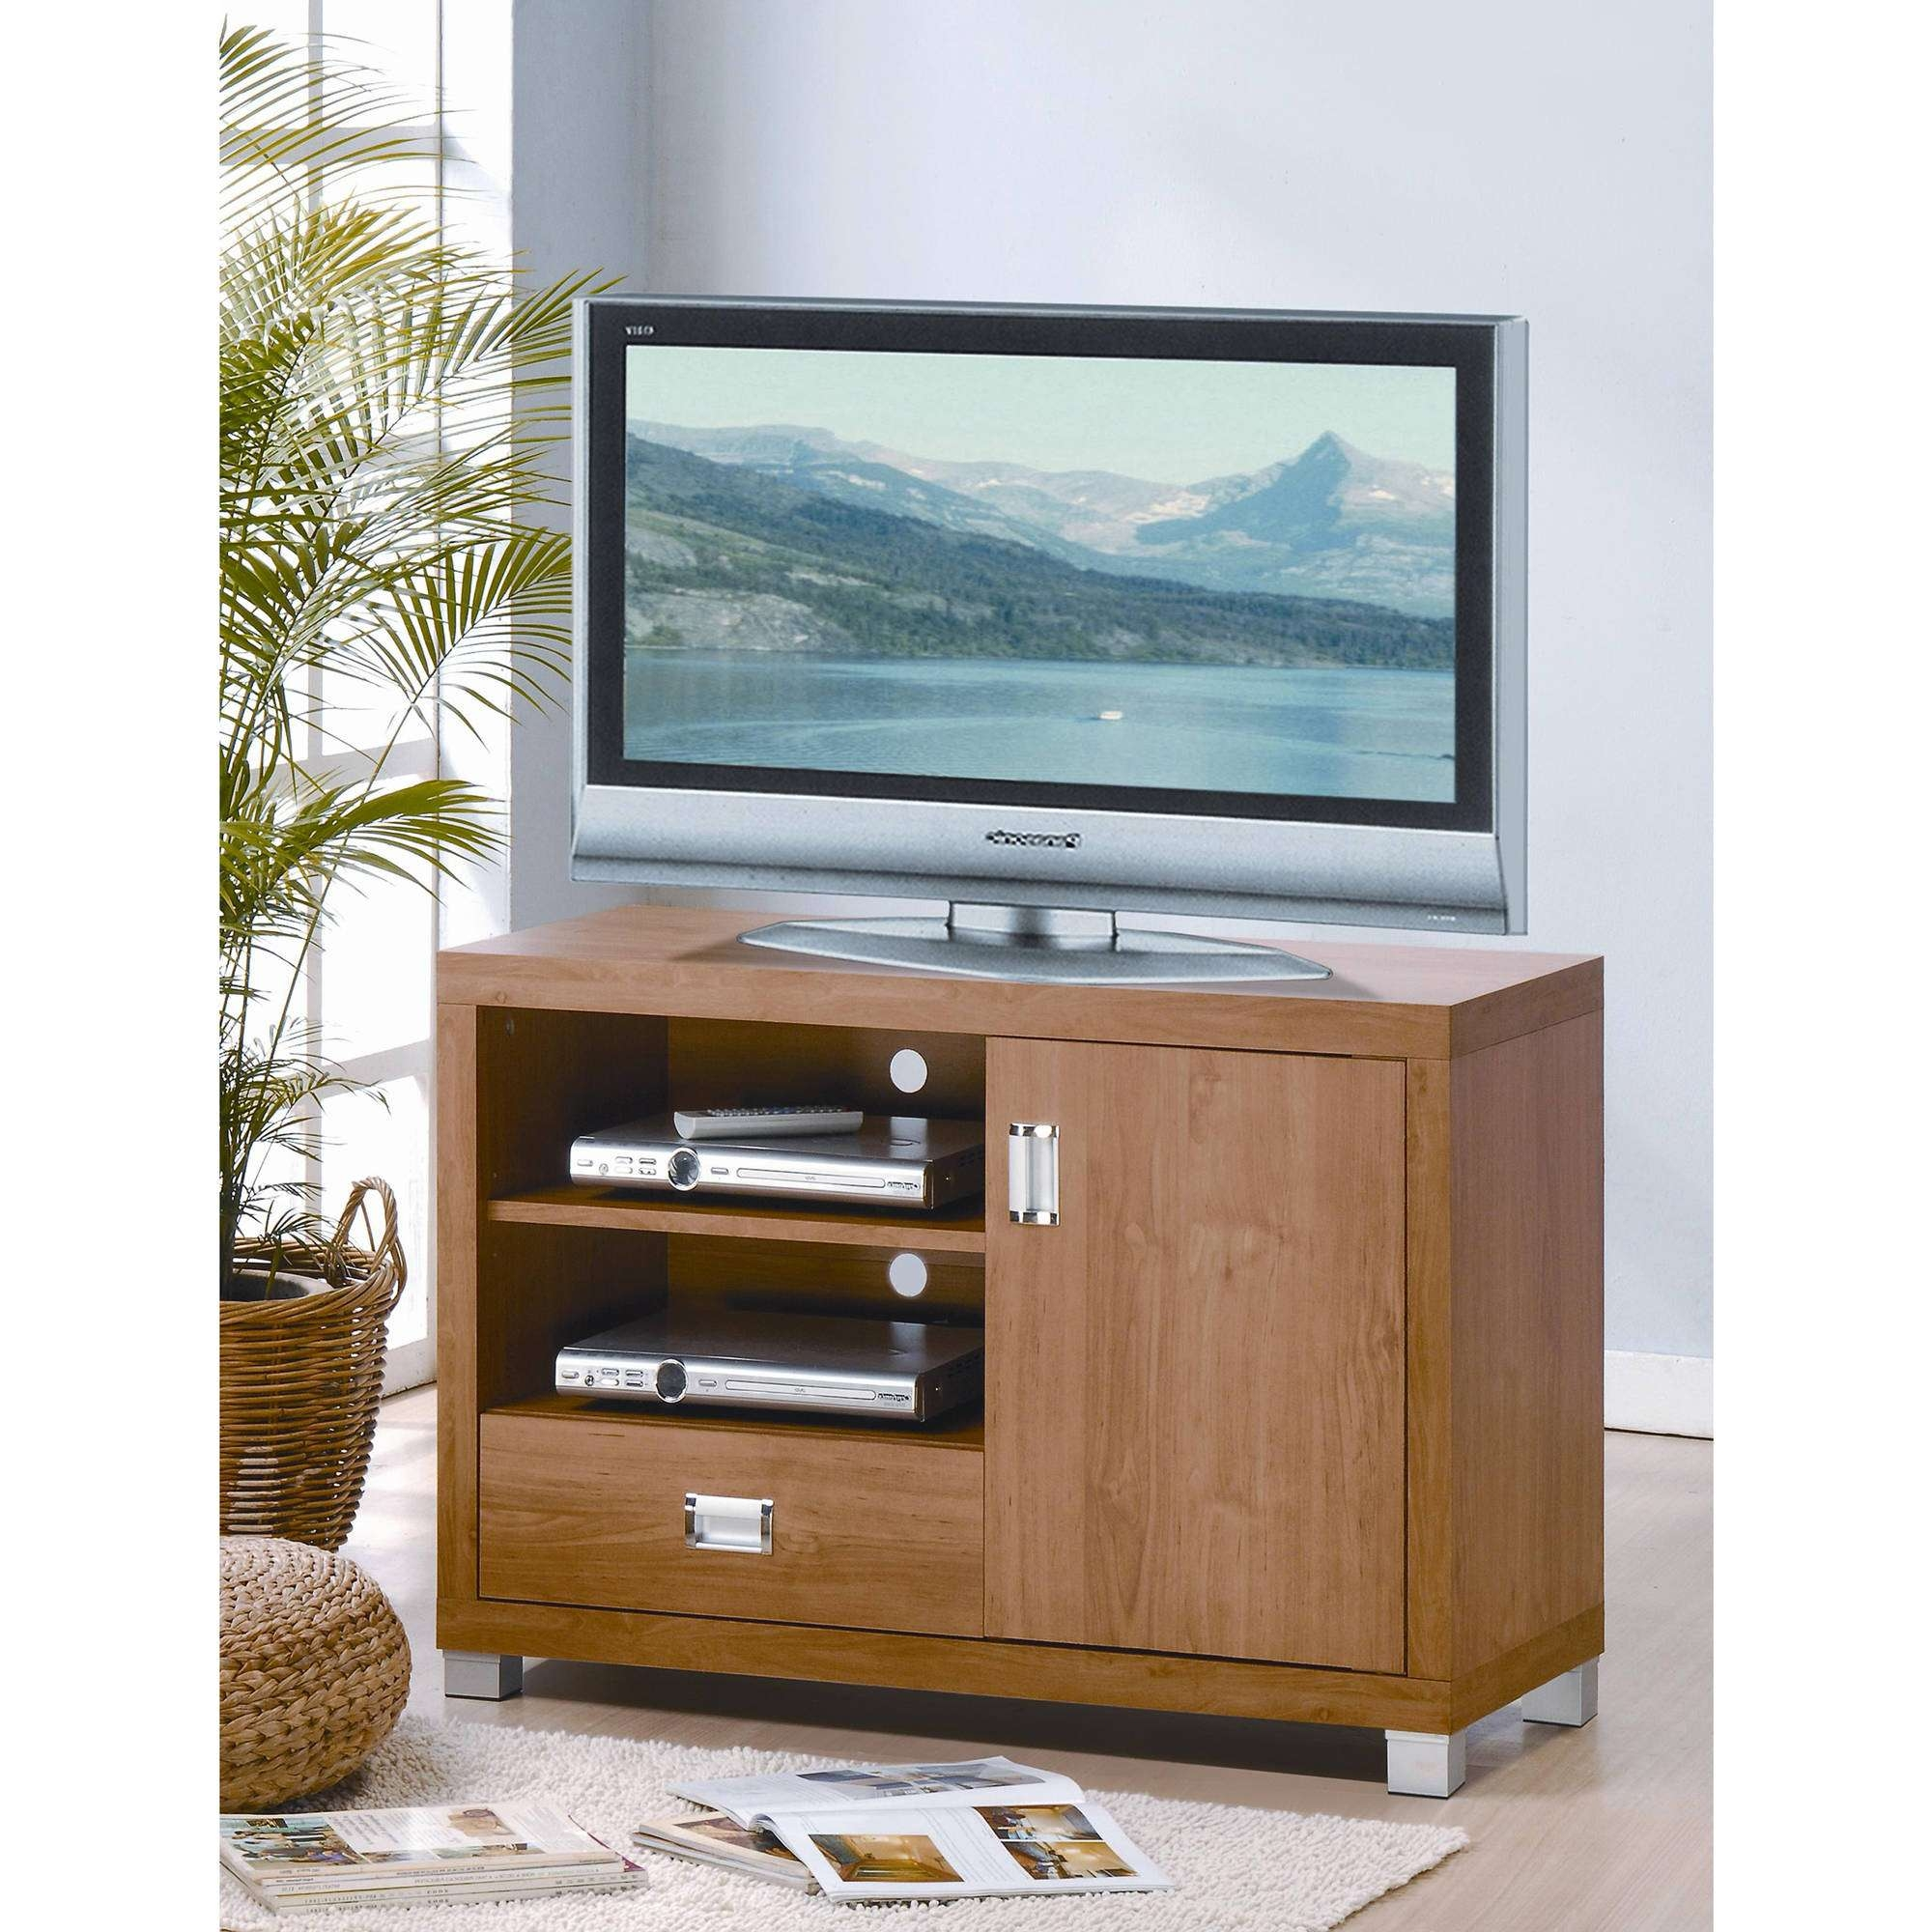 Techni Mobili Tv Cabinet, Maple – Walmart Within Maple Tv Stands (View 10 of 15)